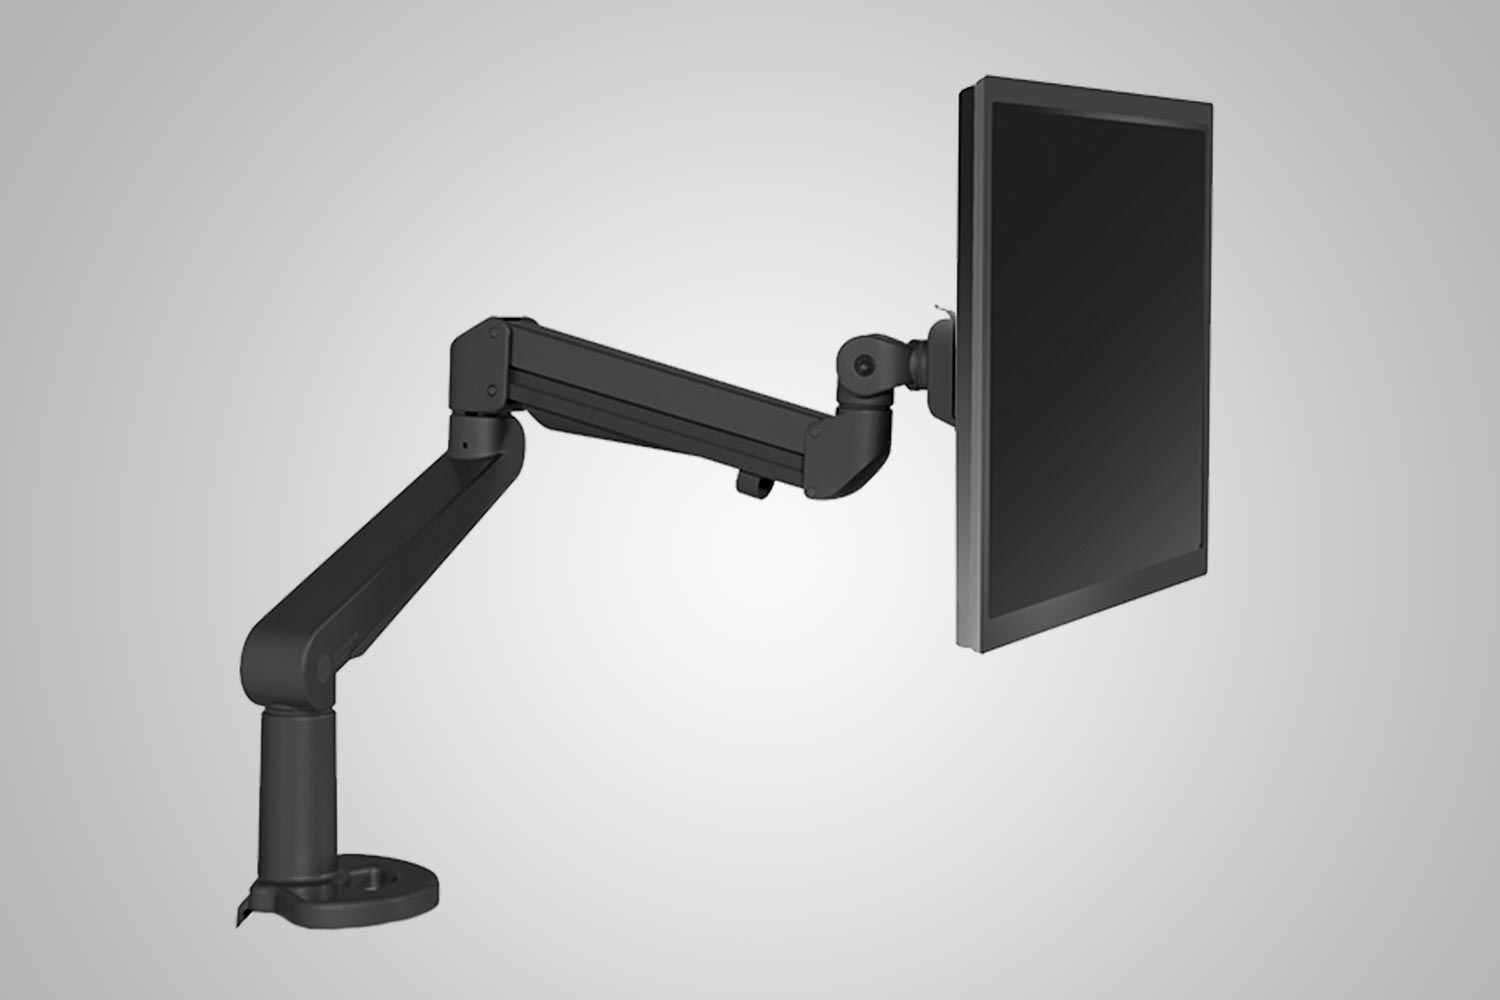 Single Monitor Arm Specs